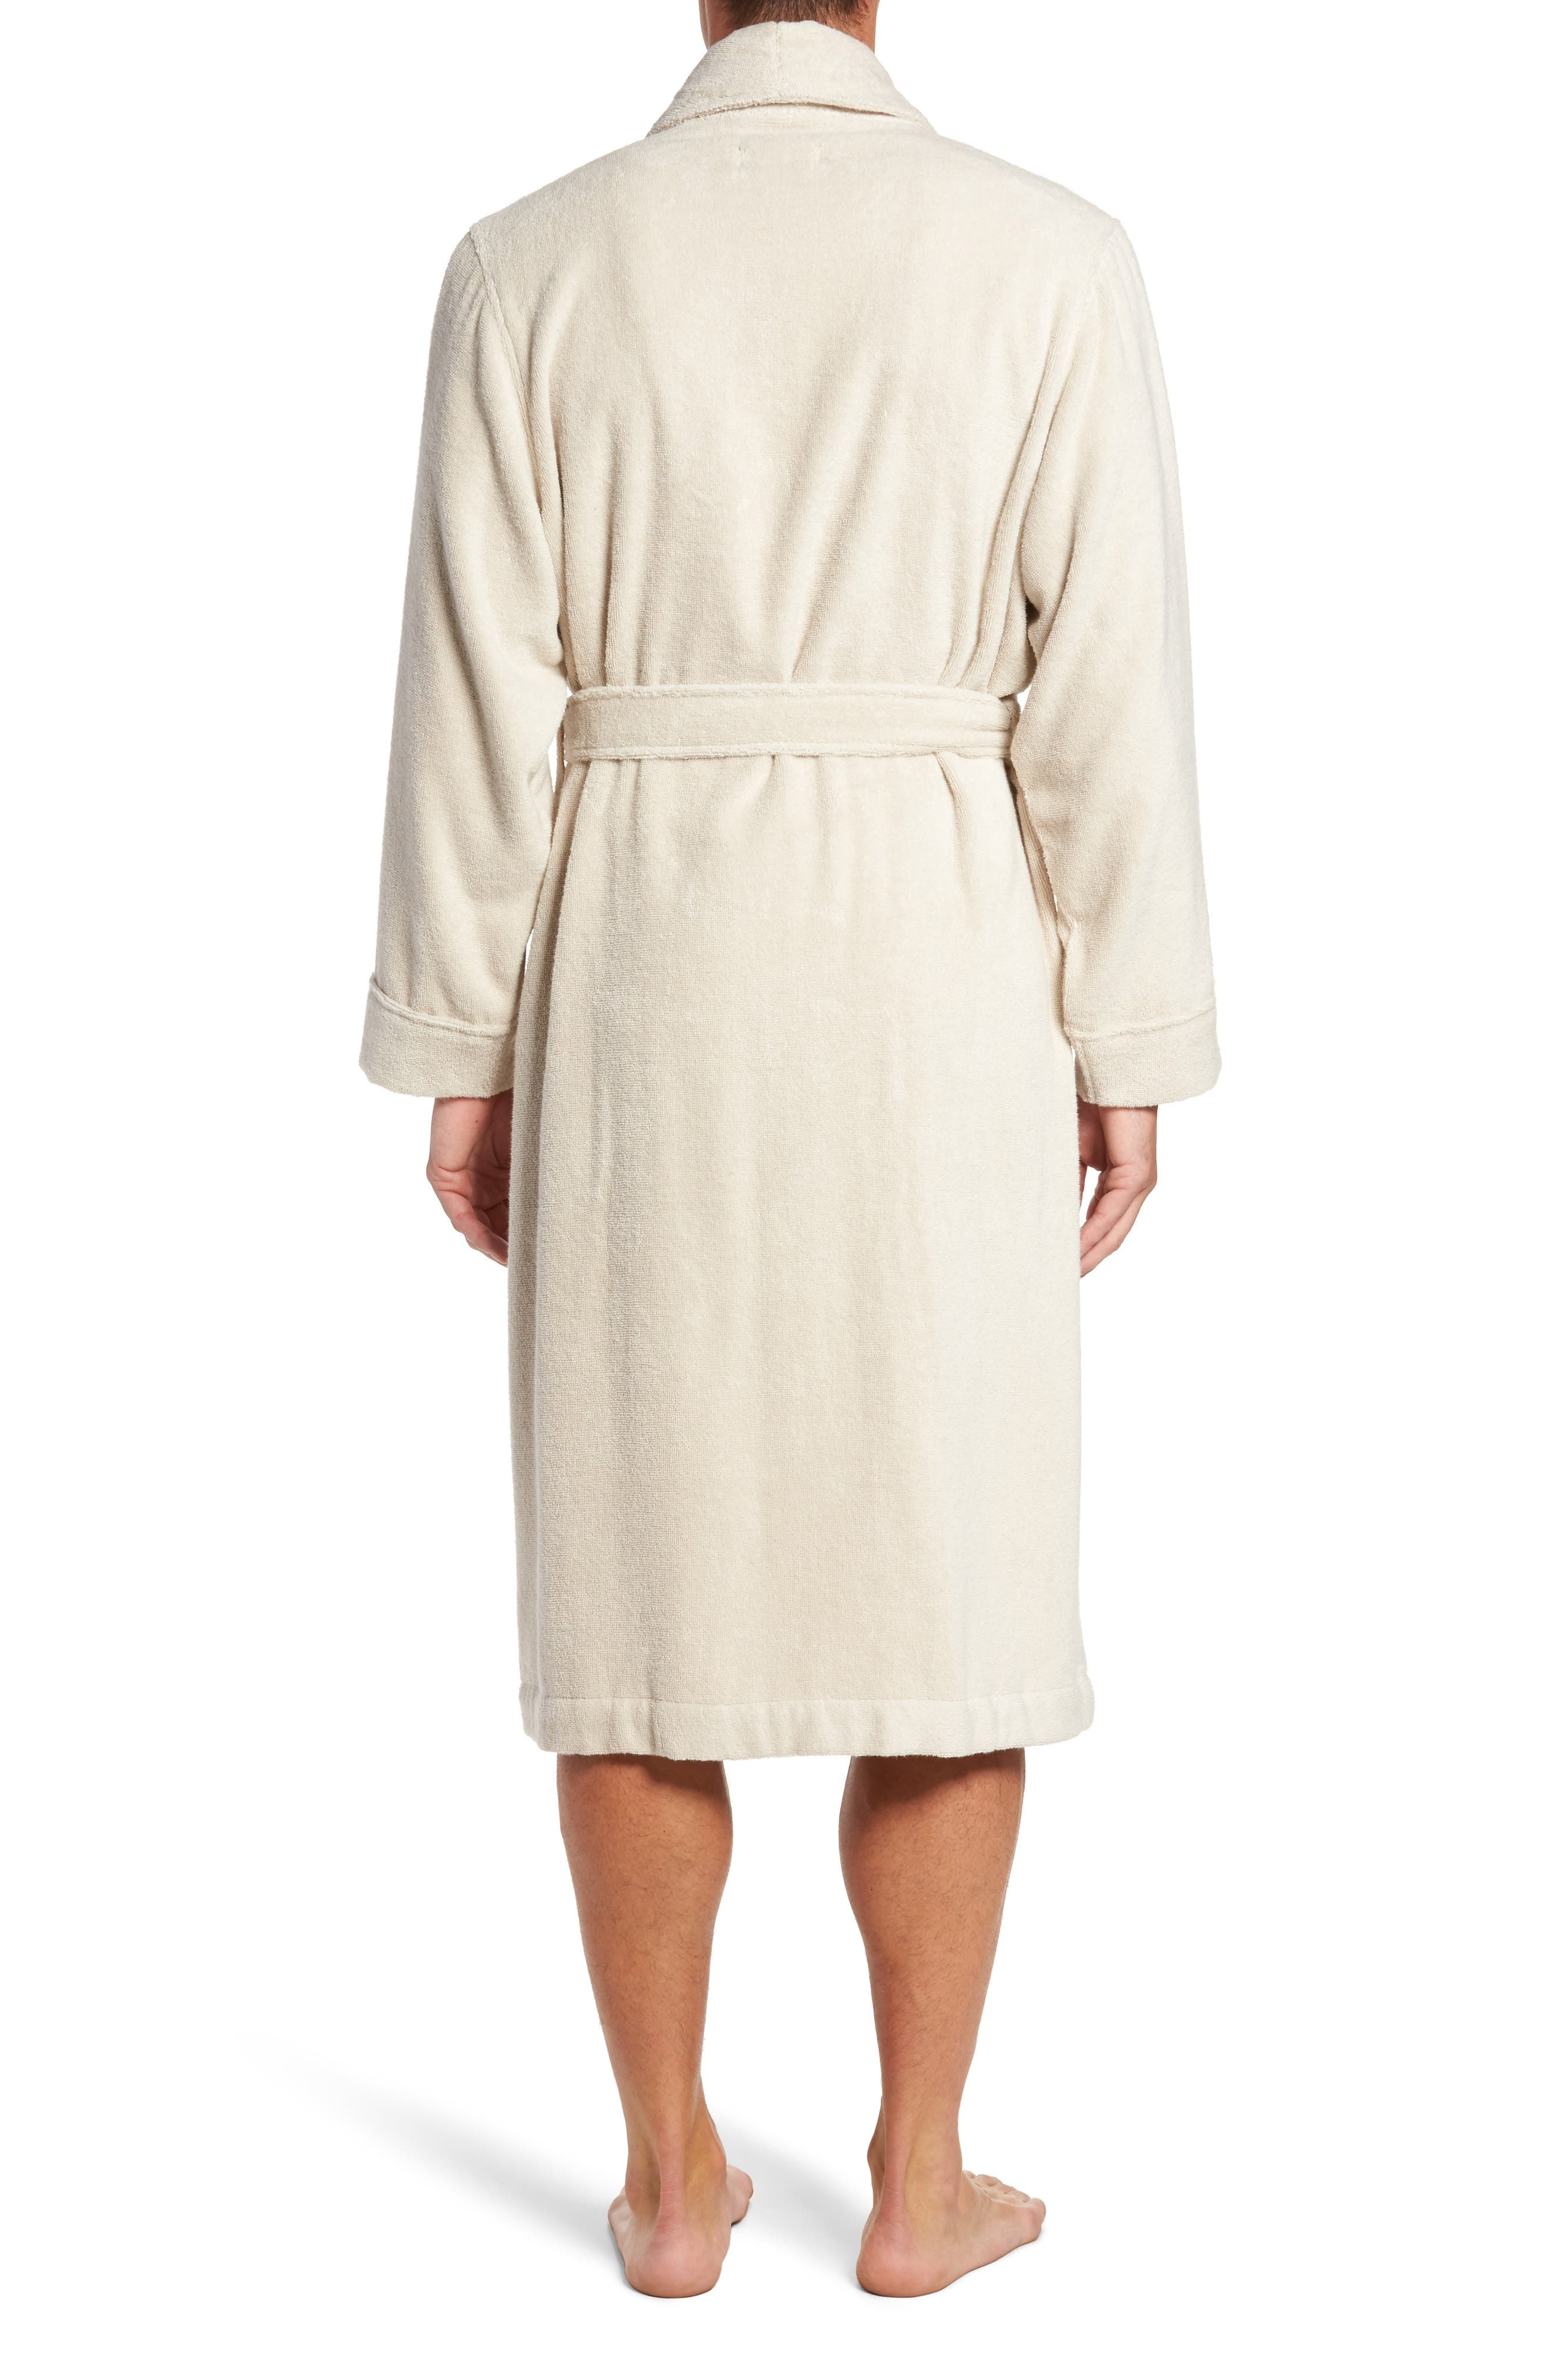 Hydro Cotton Terry Robe,                             Alternate thumbnail 2, color,                             Beige Oatmeal